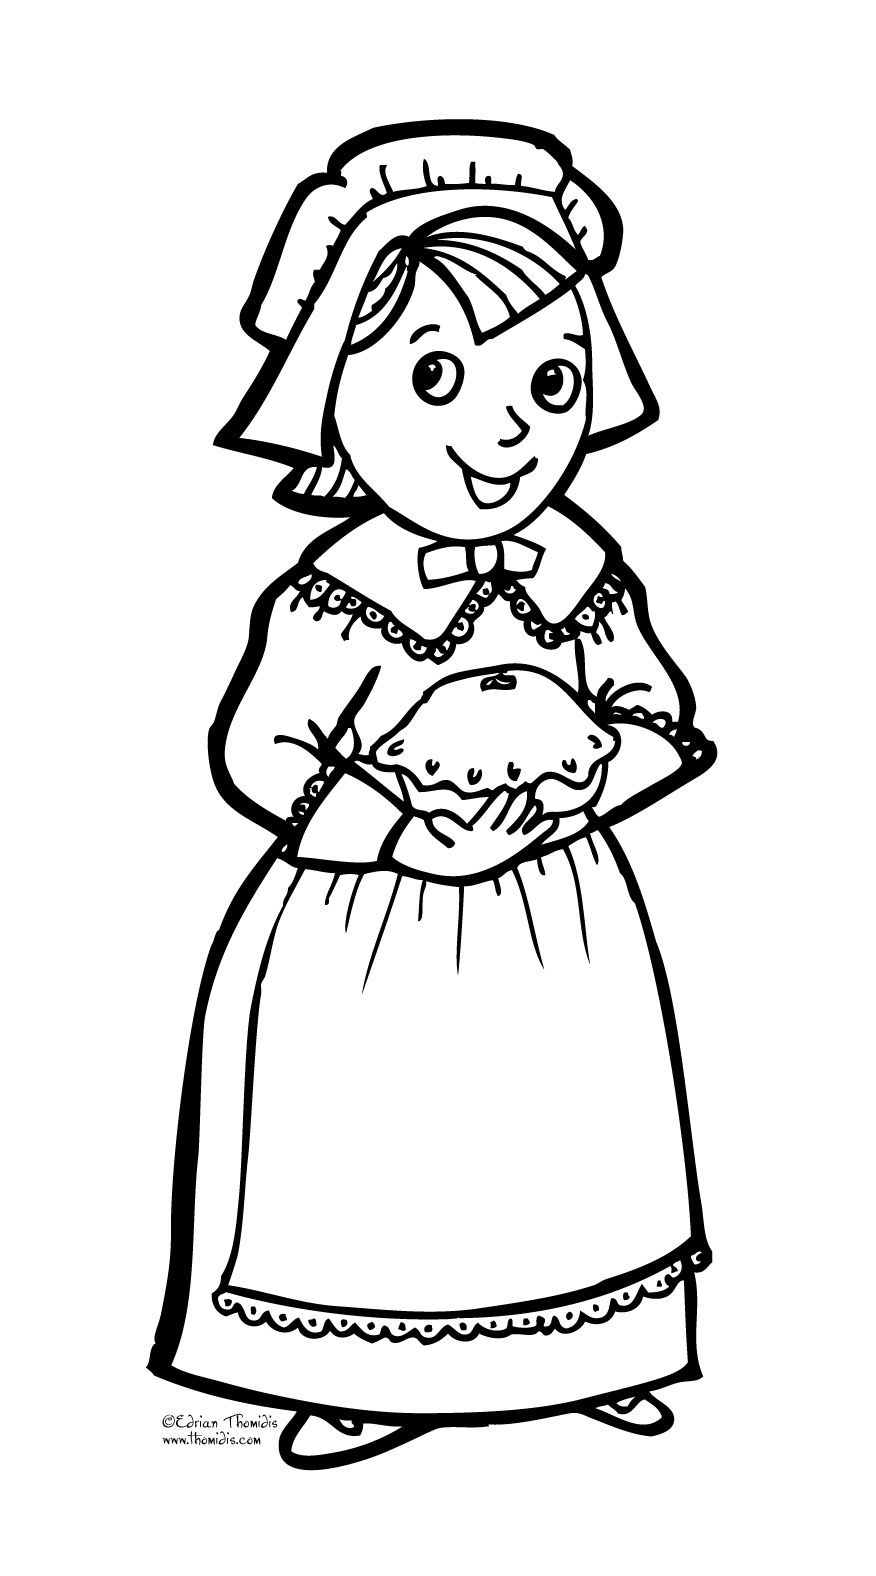 coloring pages for pilgrims - photo#32